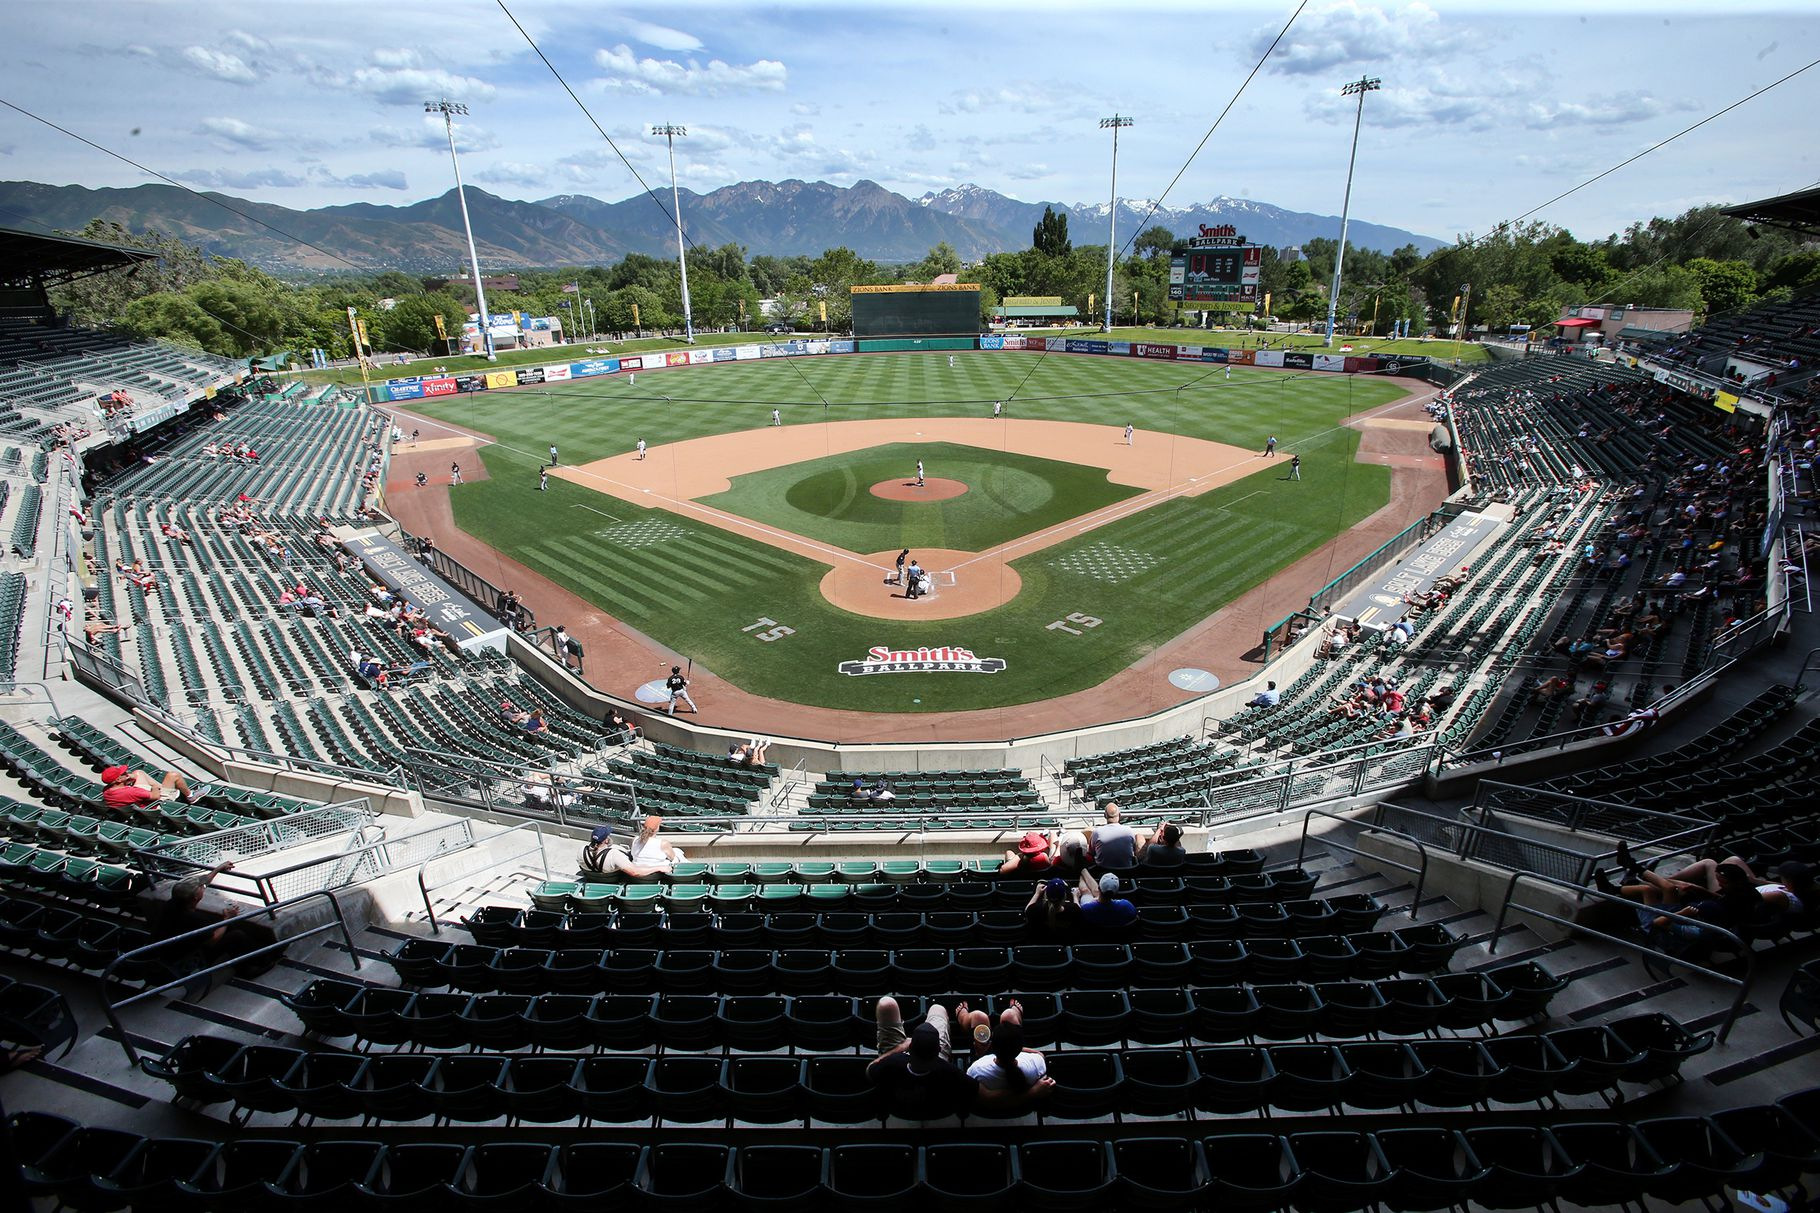 The Salt Lake Bees announced that Smith's Ballpark will be open to full capacity.